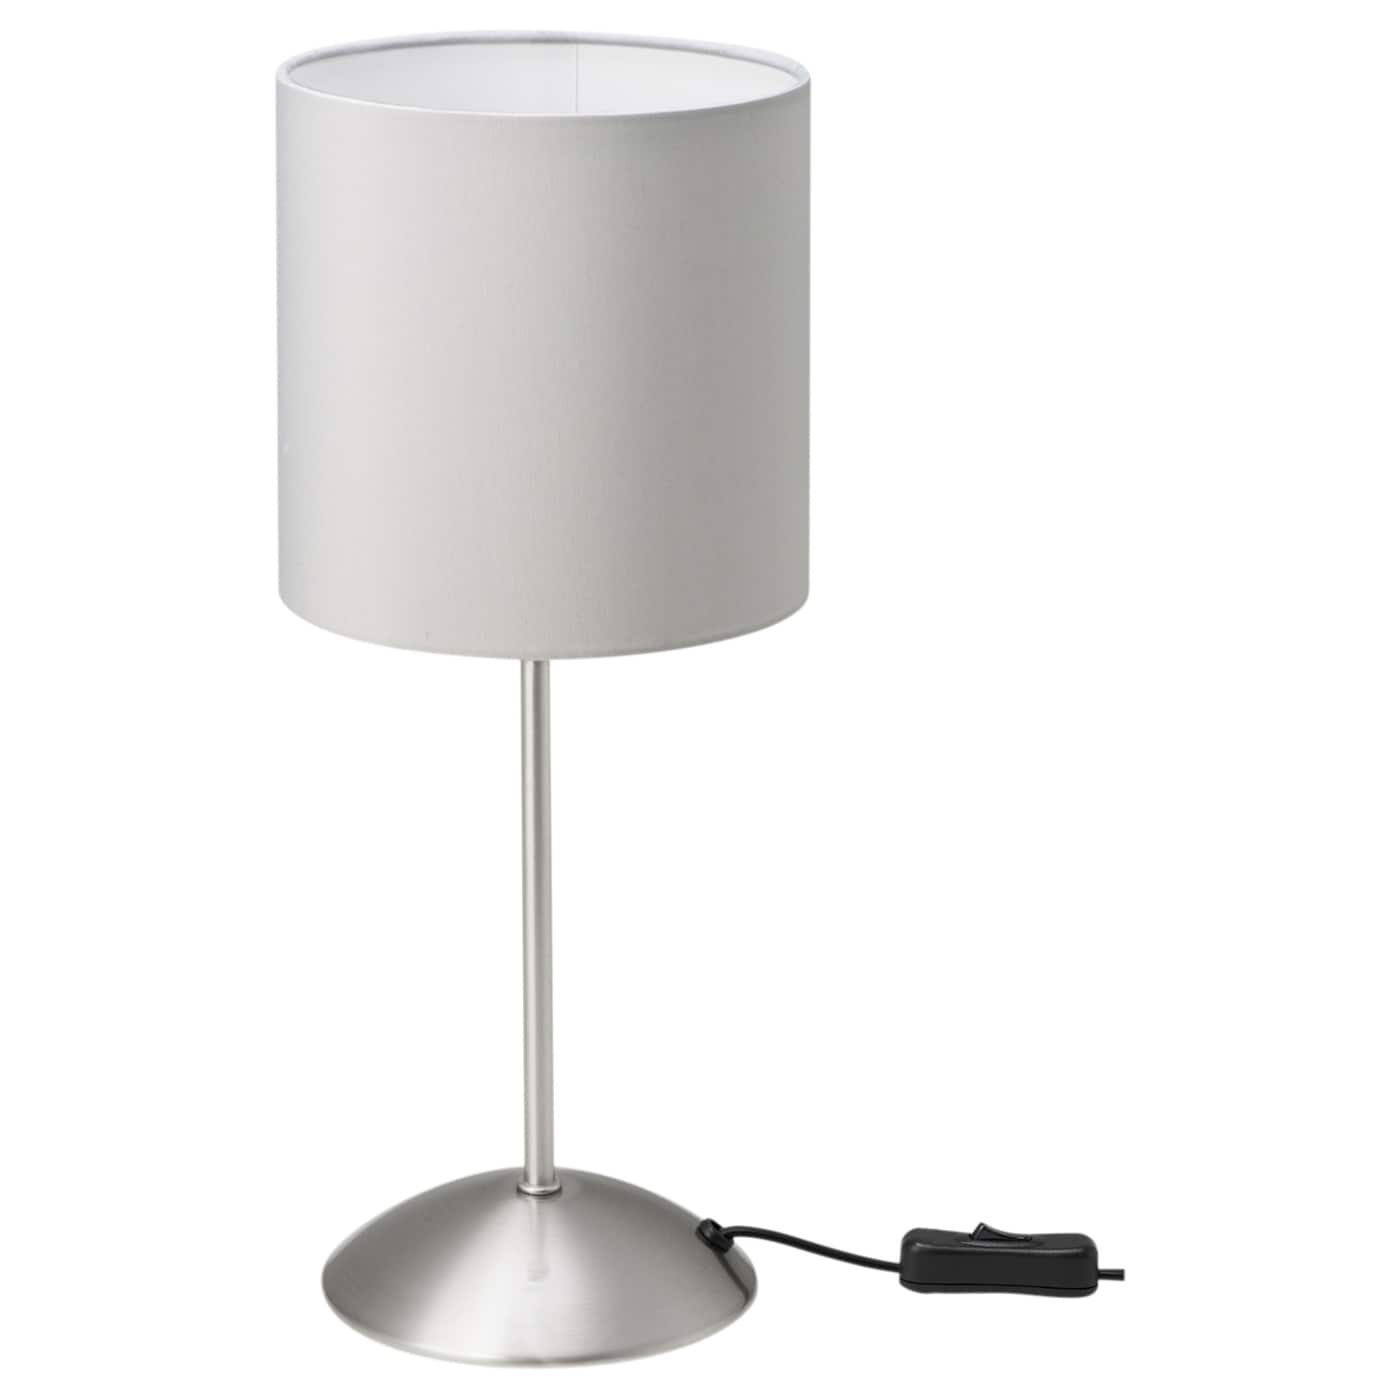 table lamps bedside lamps ikea ireland. Black Bedroom Furniture Sets. Home Design Ideas